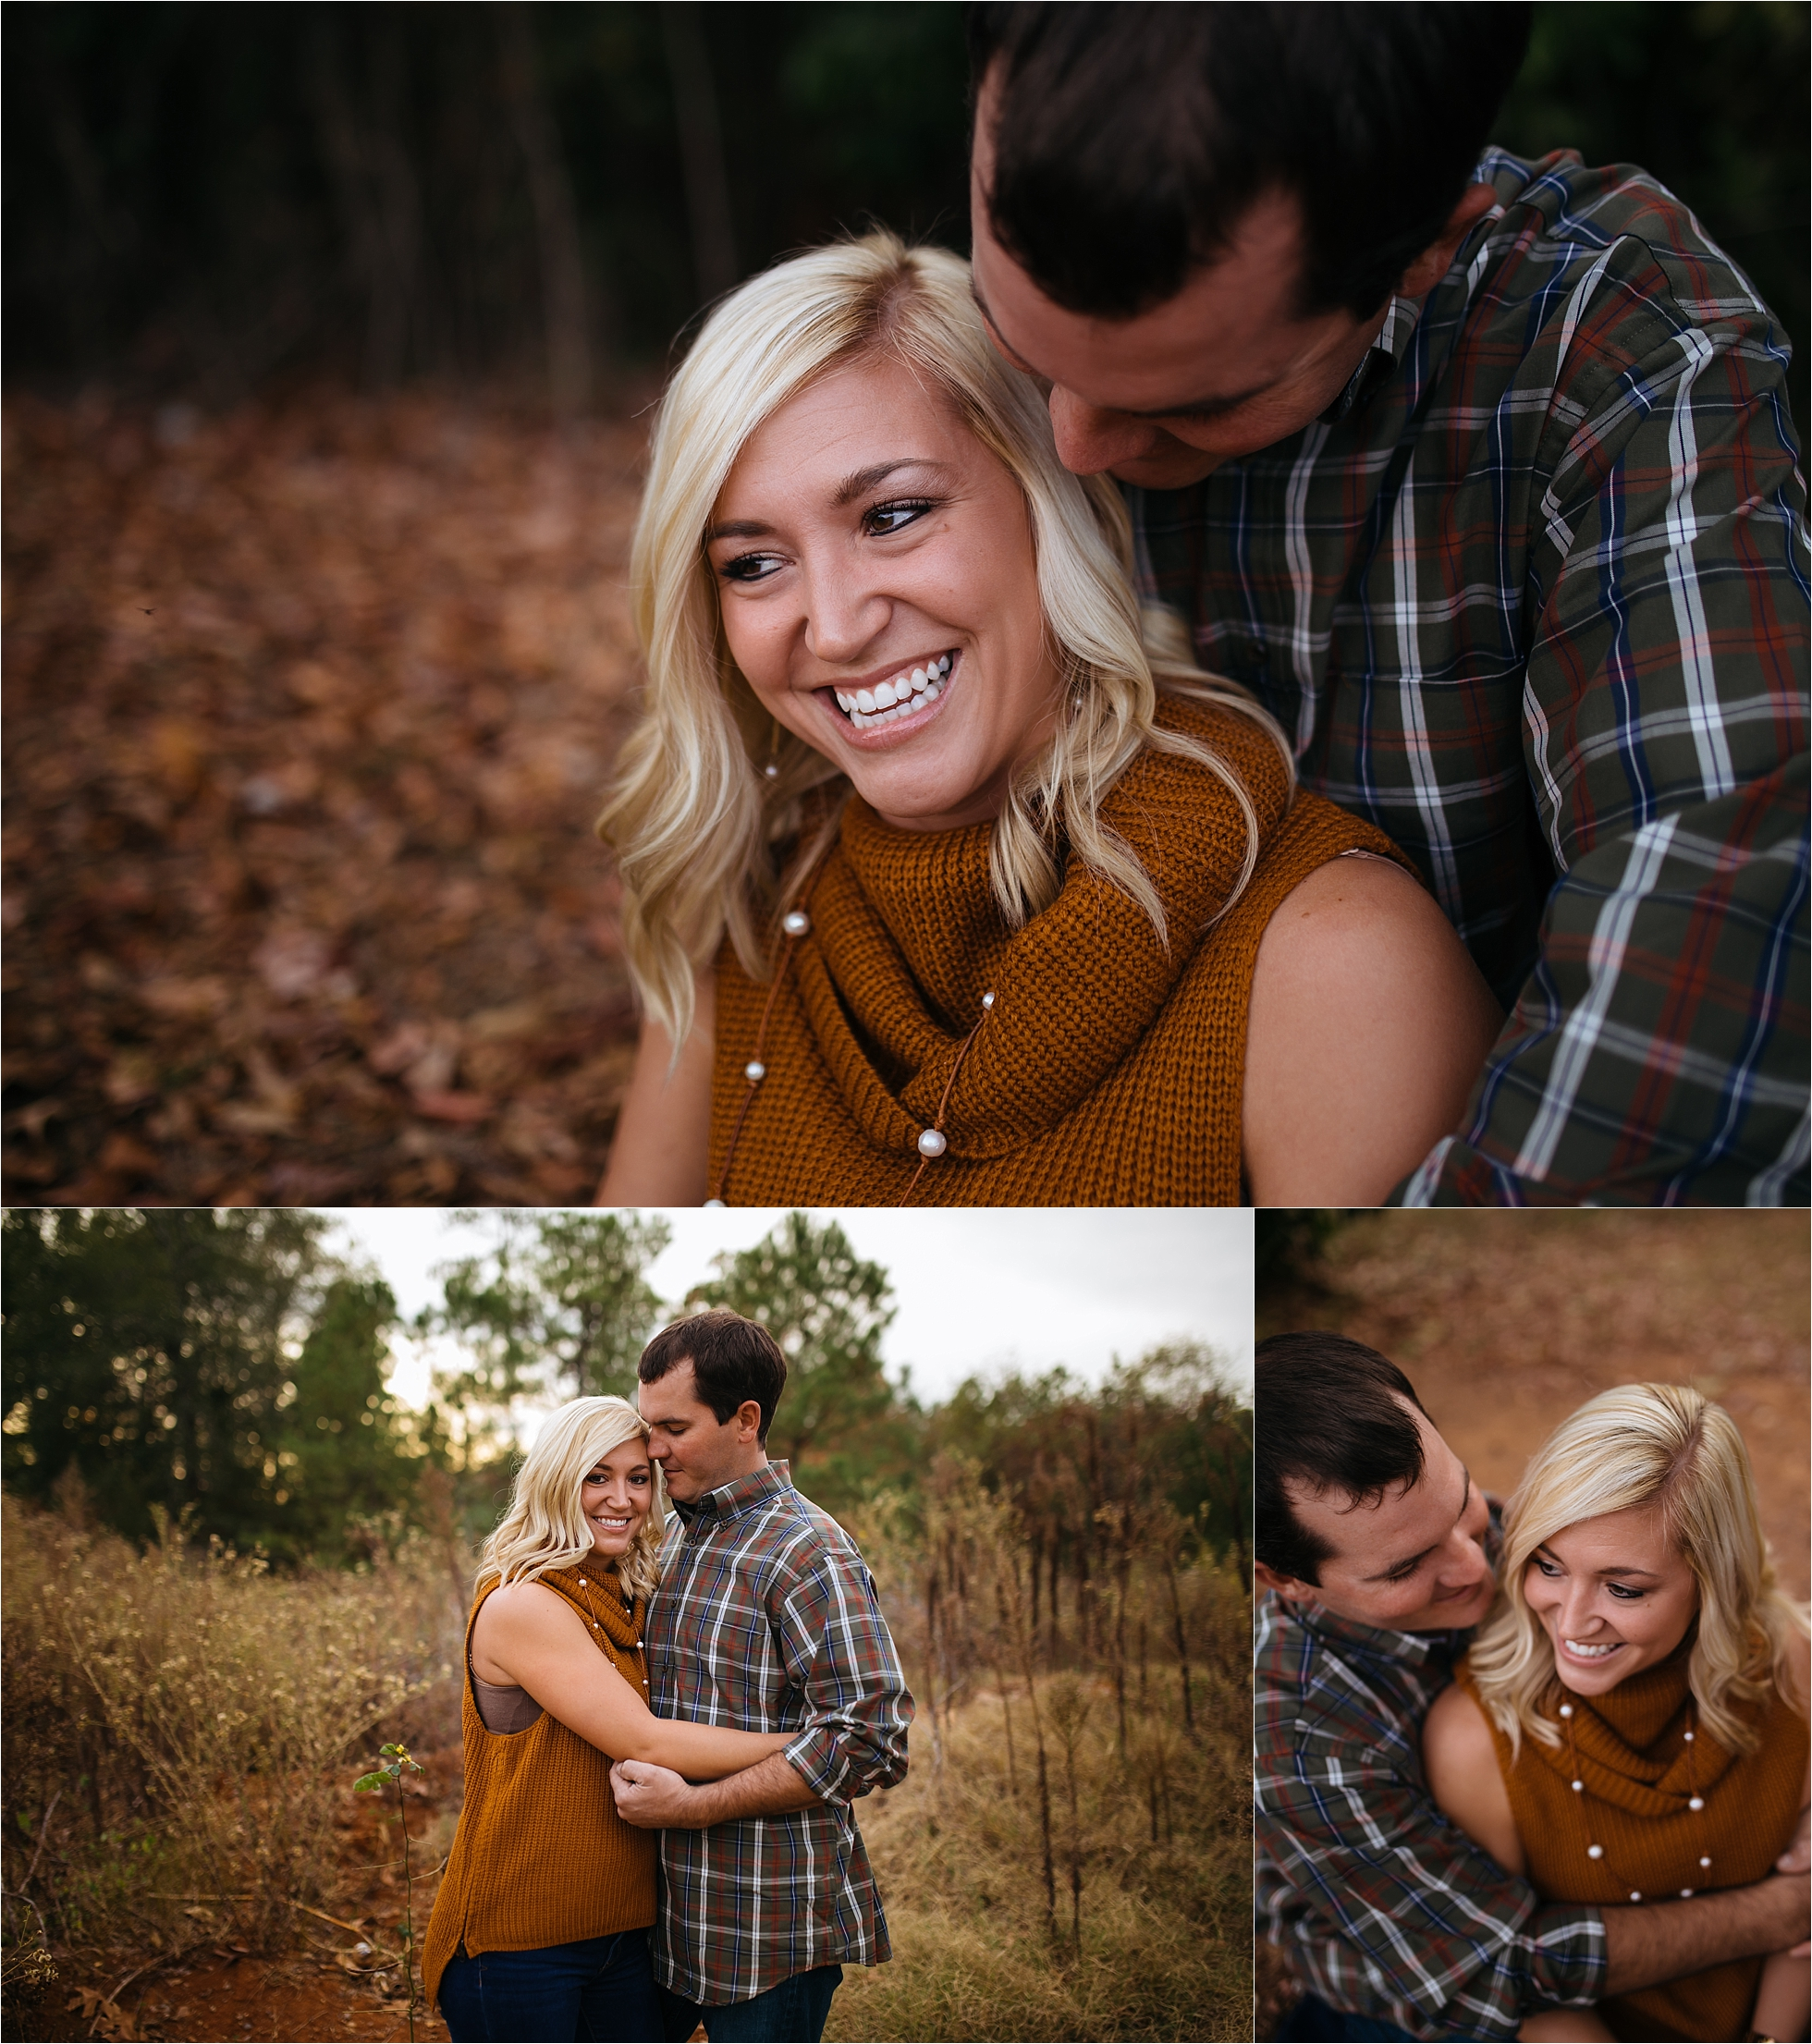 fall-family-photo-session-madison-huntsville-alabama-mary-colleen-photography-18